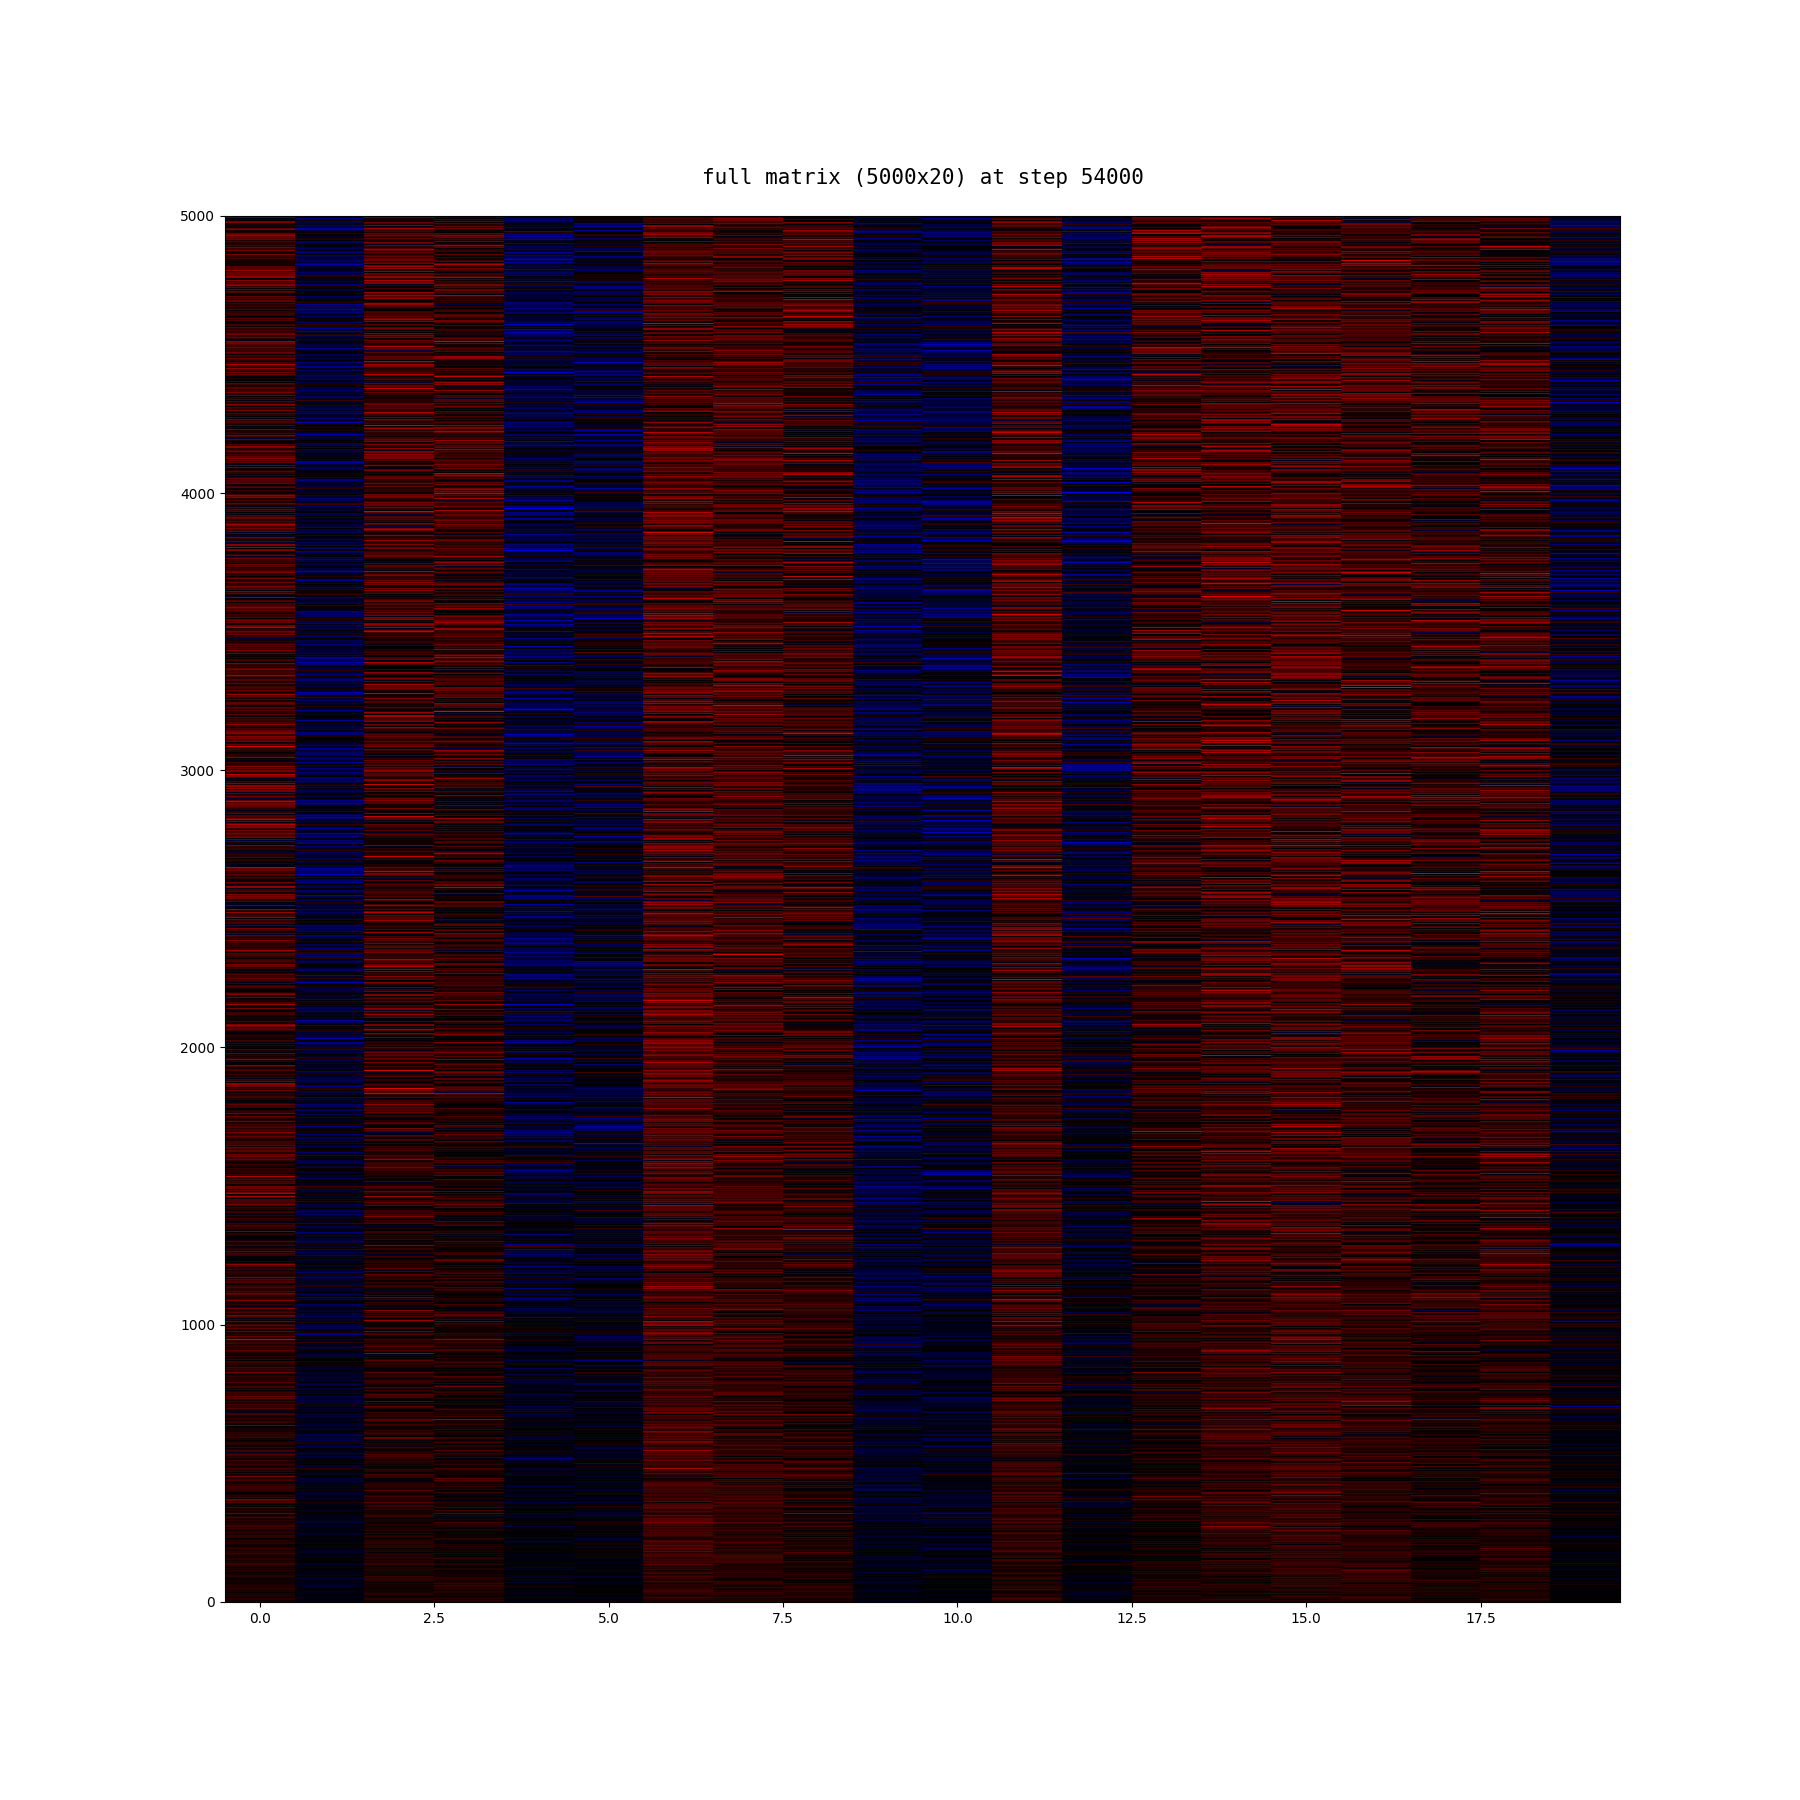 algoliterary_encounter/word2vec/plots/full-matrix/frankenstein-full-matrix-at-step_54000.png